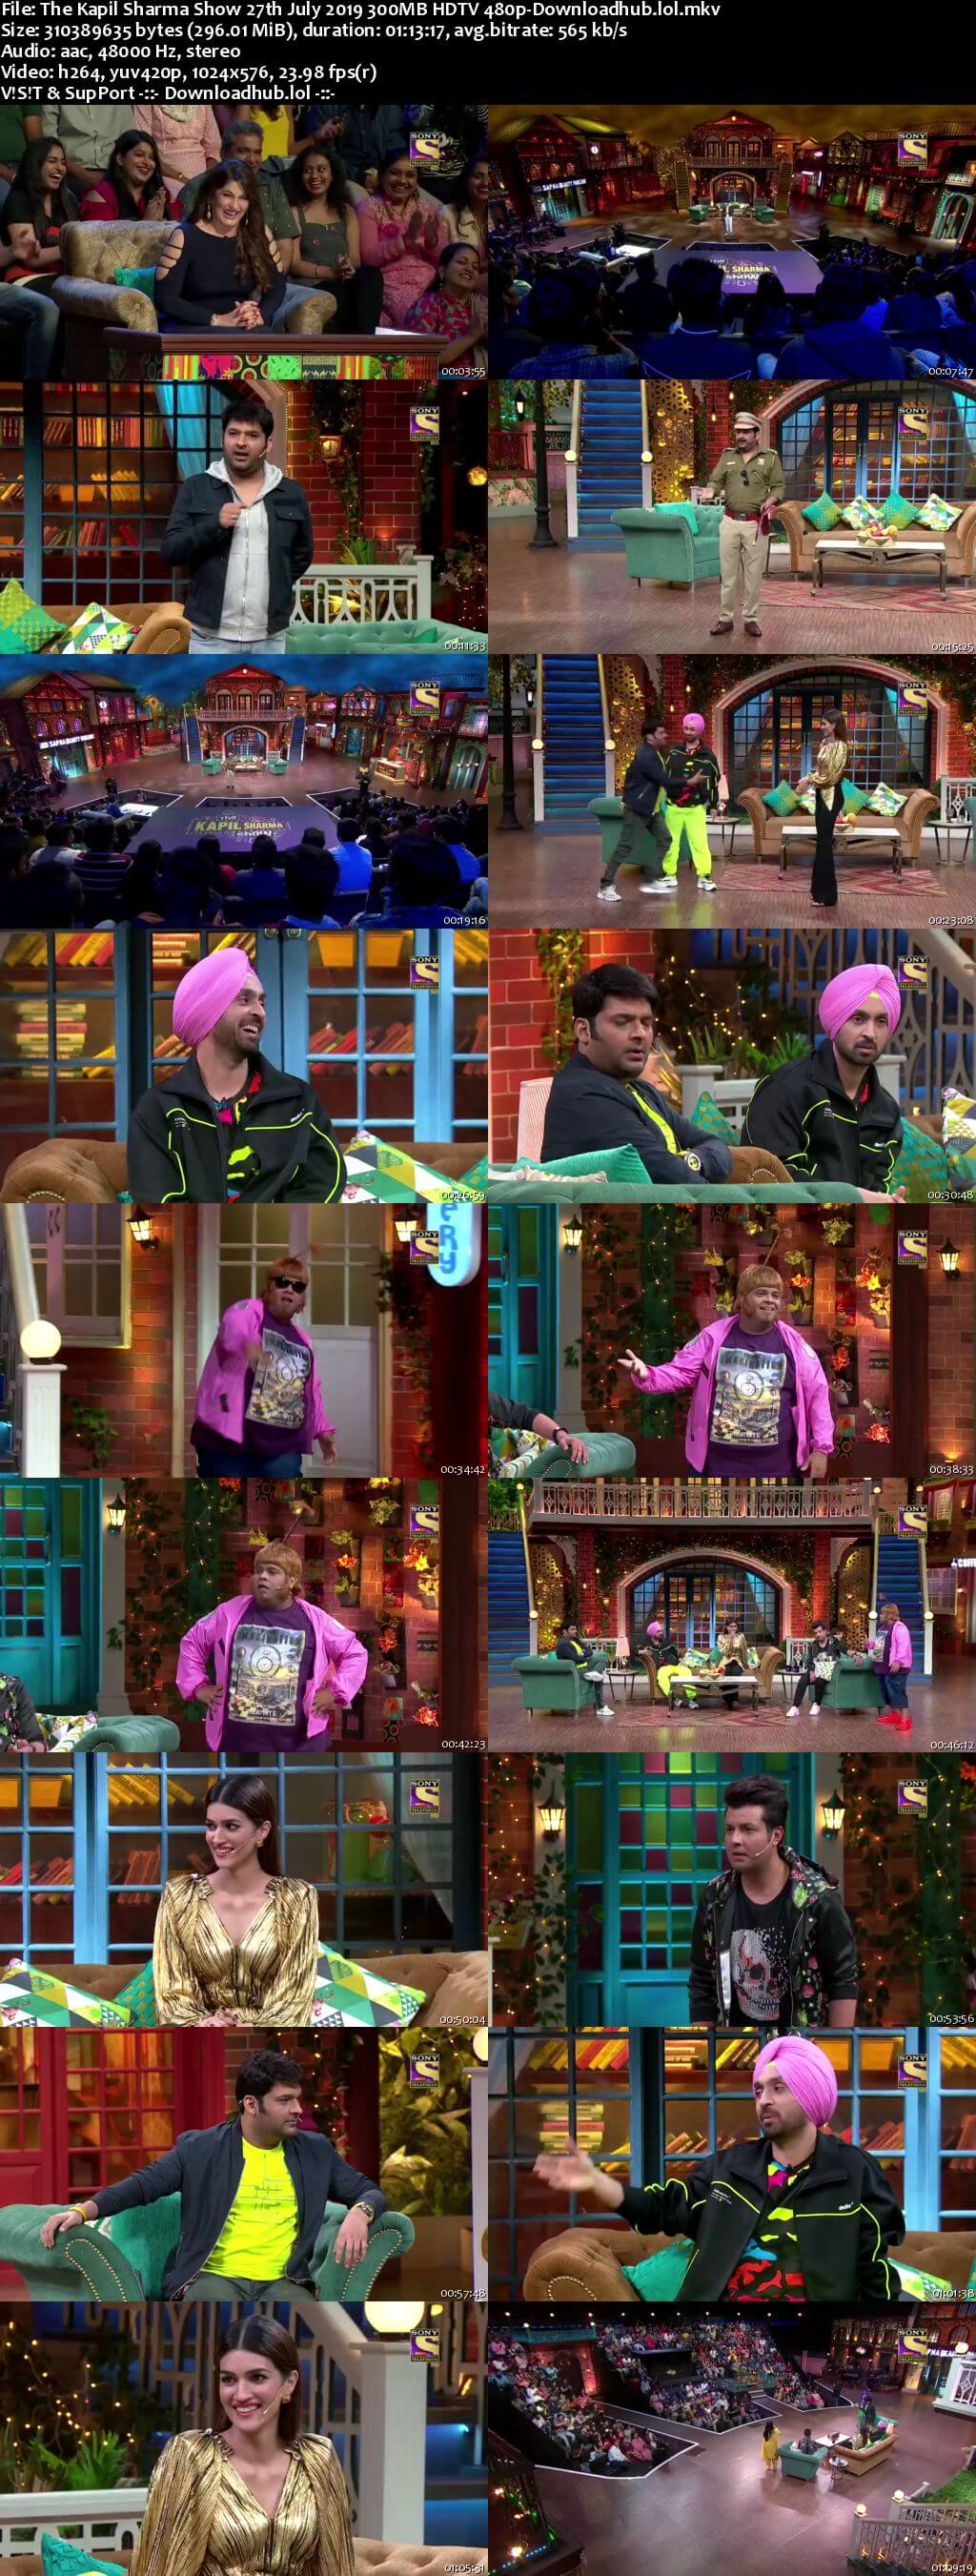 The Kapil Sharma Show 27 July 2019 Episode 60 HDTV 480p